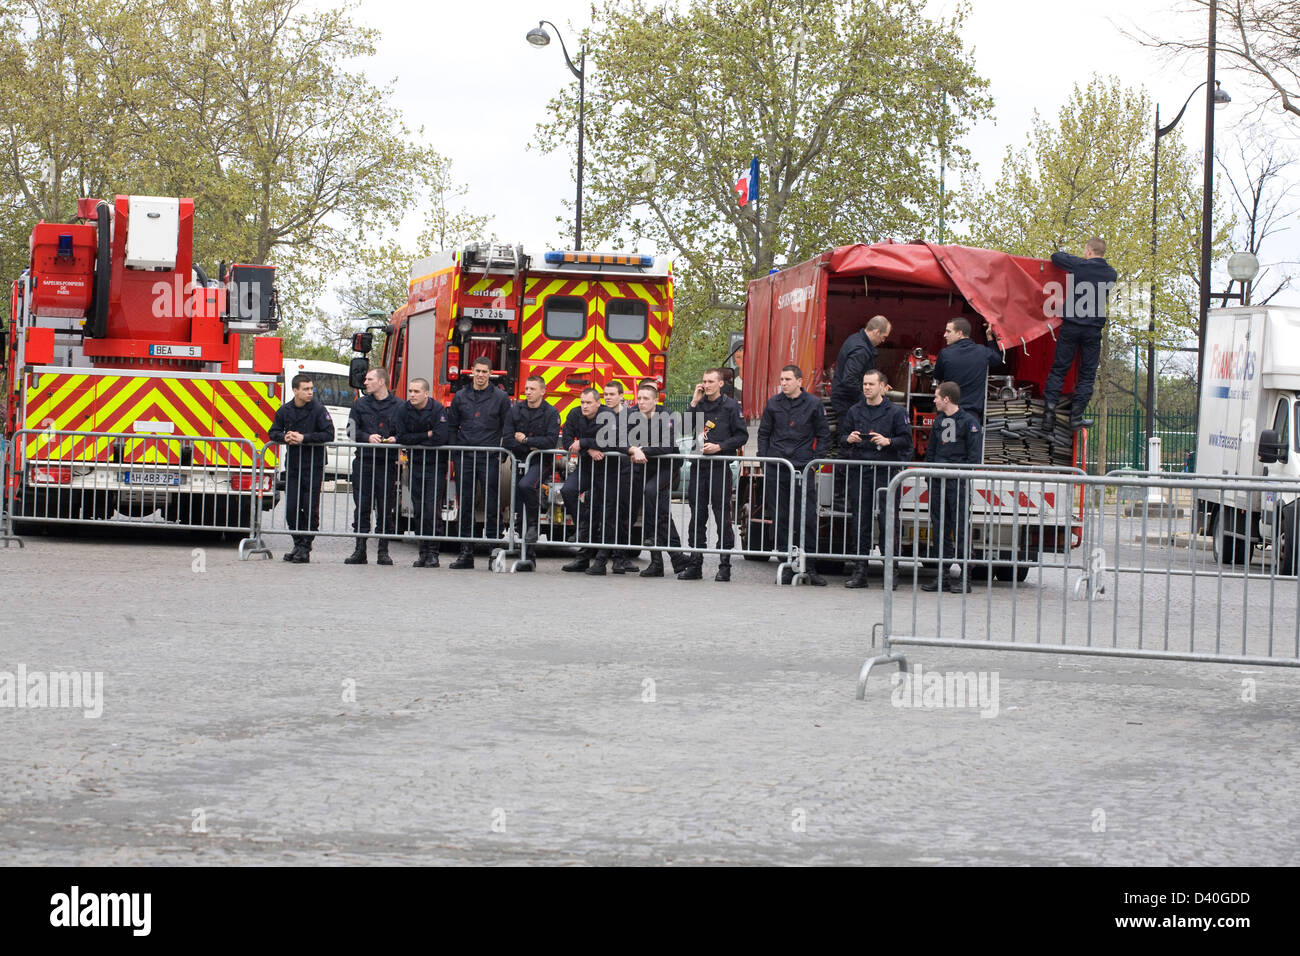 Group Of Firefighters On The Street Paris France - Stock Image